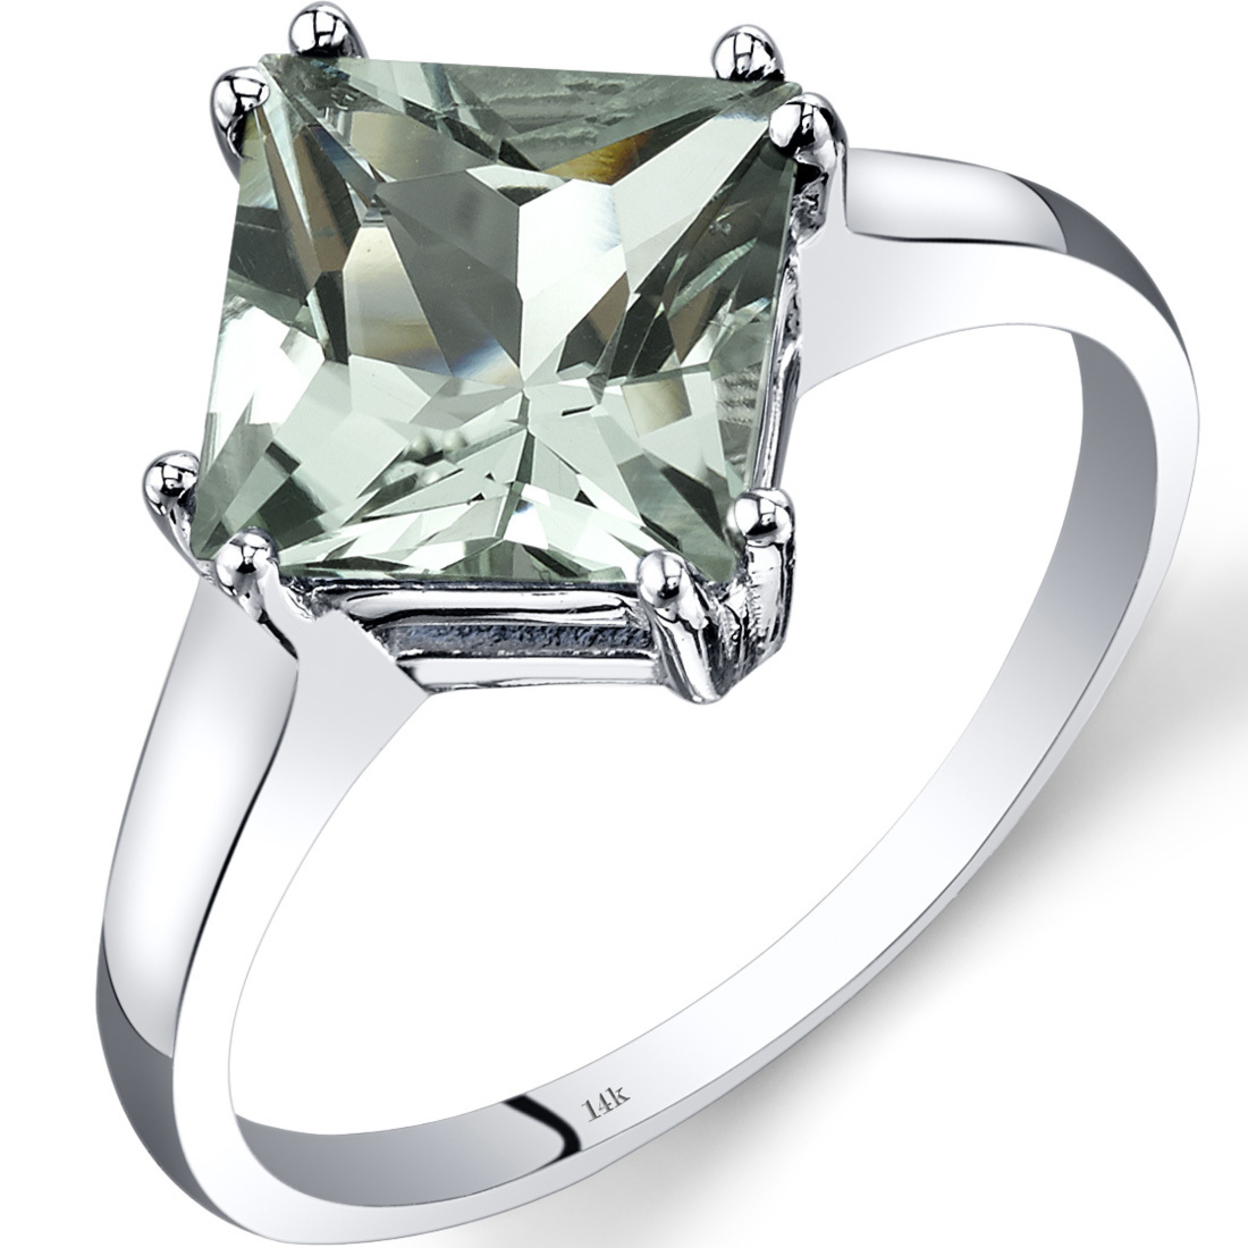 14k White Gold Green Amethyst Solitaire Ring 2.00 Carat Princess Cut R62186